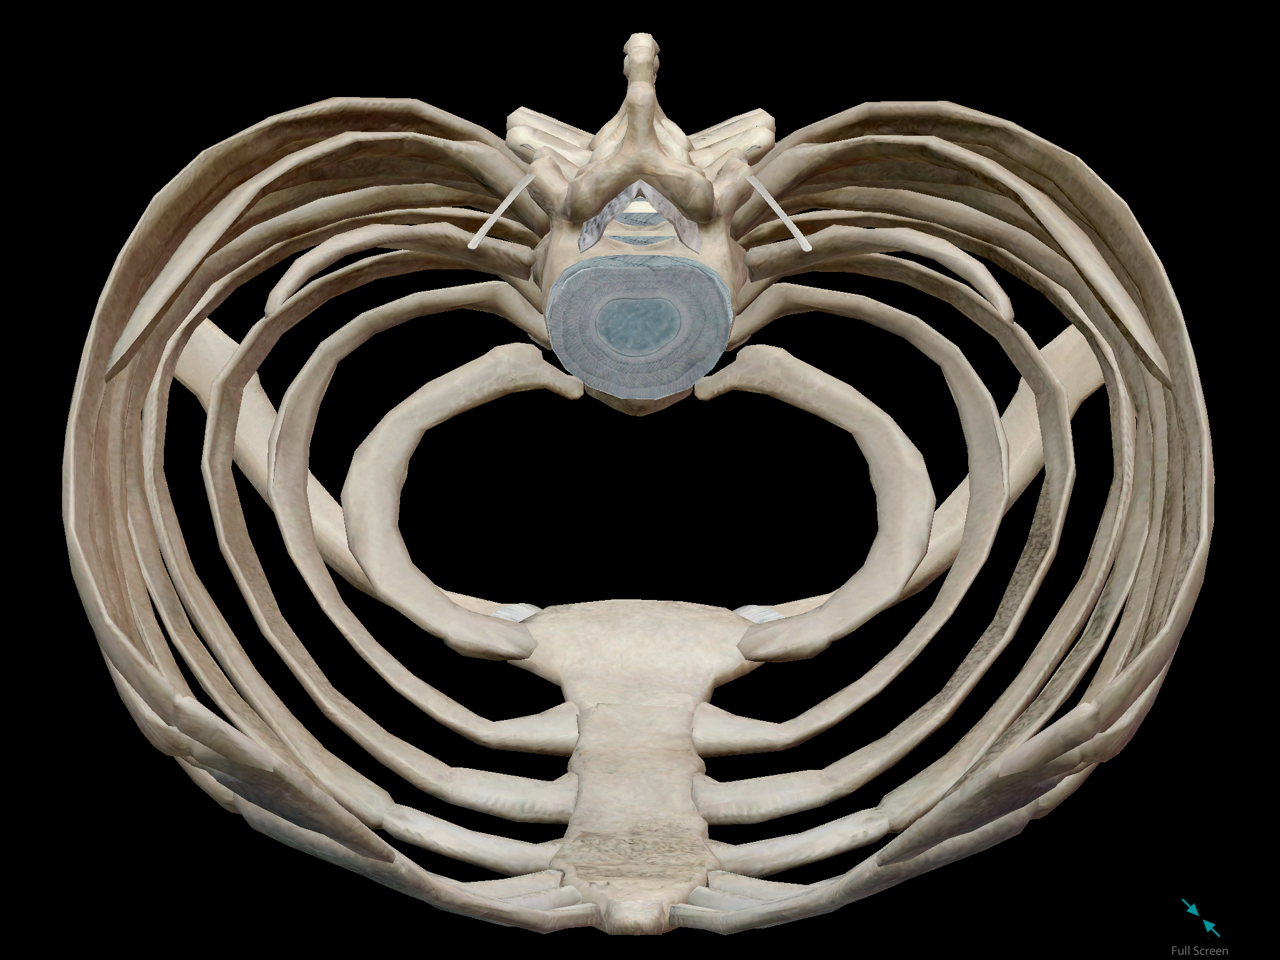 thoracic-cage-inside-space-cavity.png